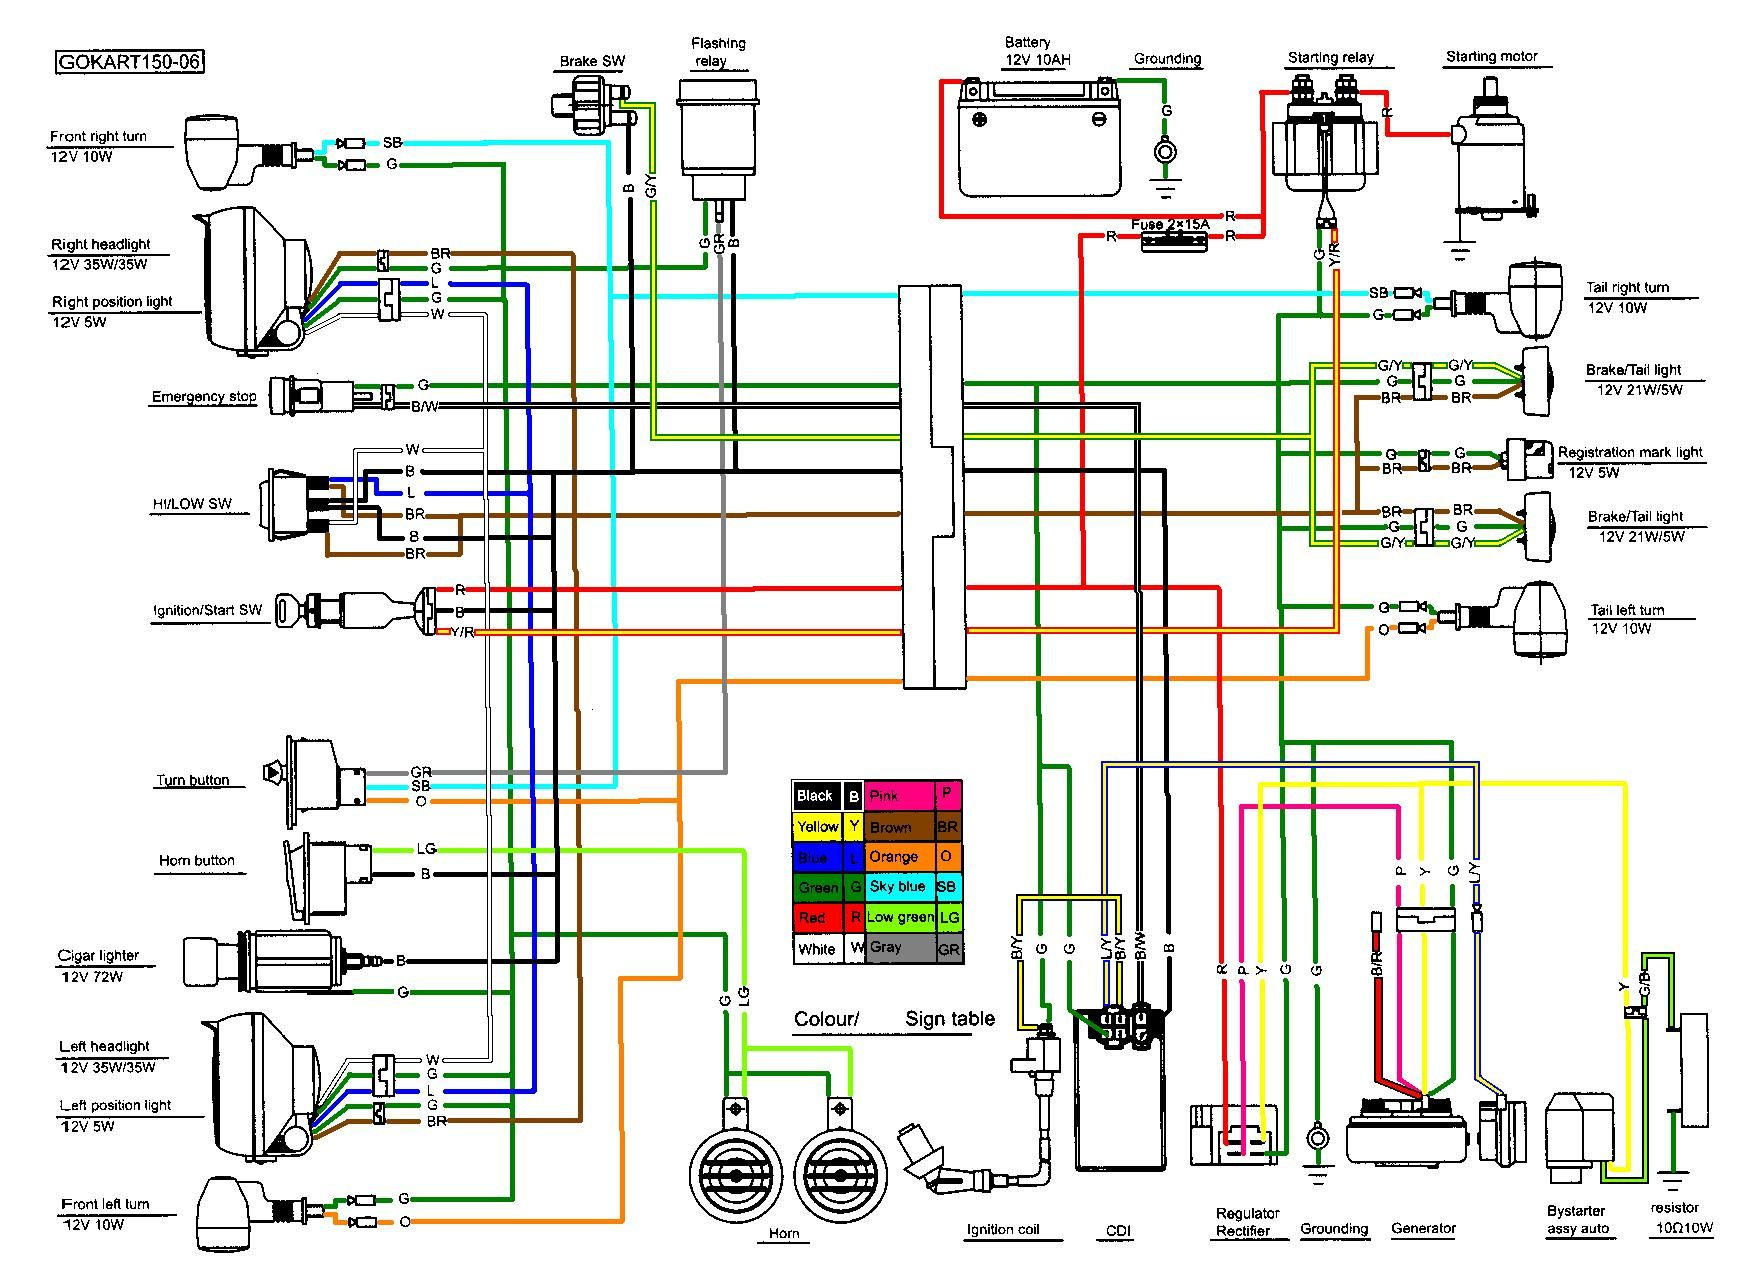 Wiring Diagram Gy6 Schematic Download GY6 Ignition Throughout 150Cc |  Motorcycle wiring, 150cc go kart, 150cc scooter | Gy6 150cc Buggy Wiring Diagram |  | Pinterest